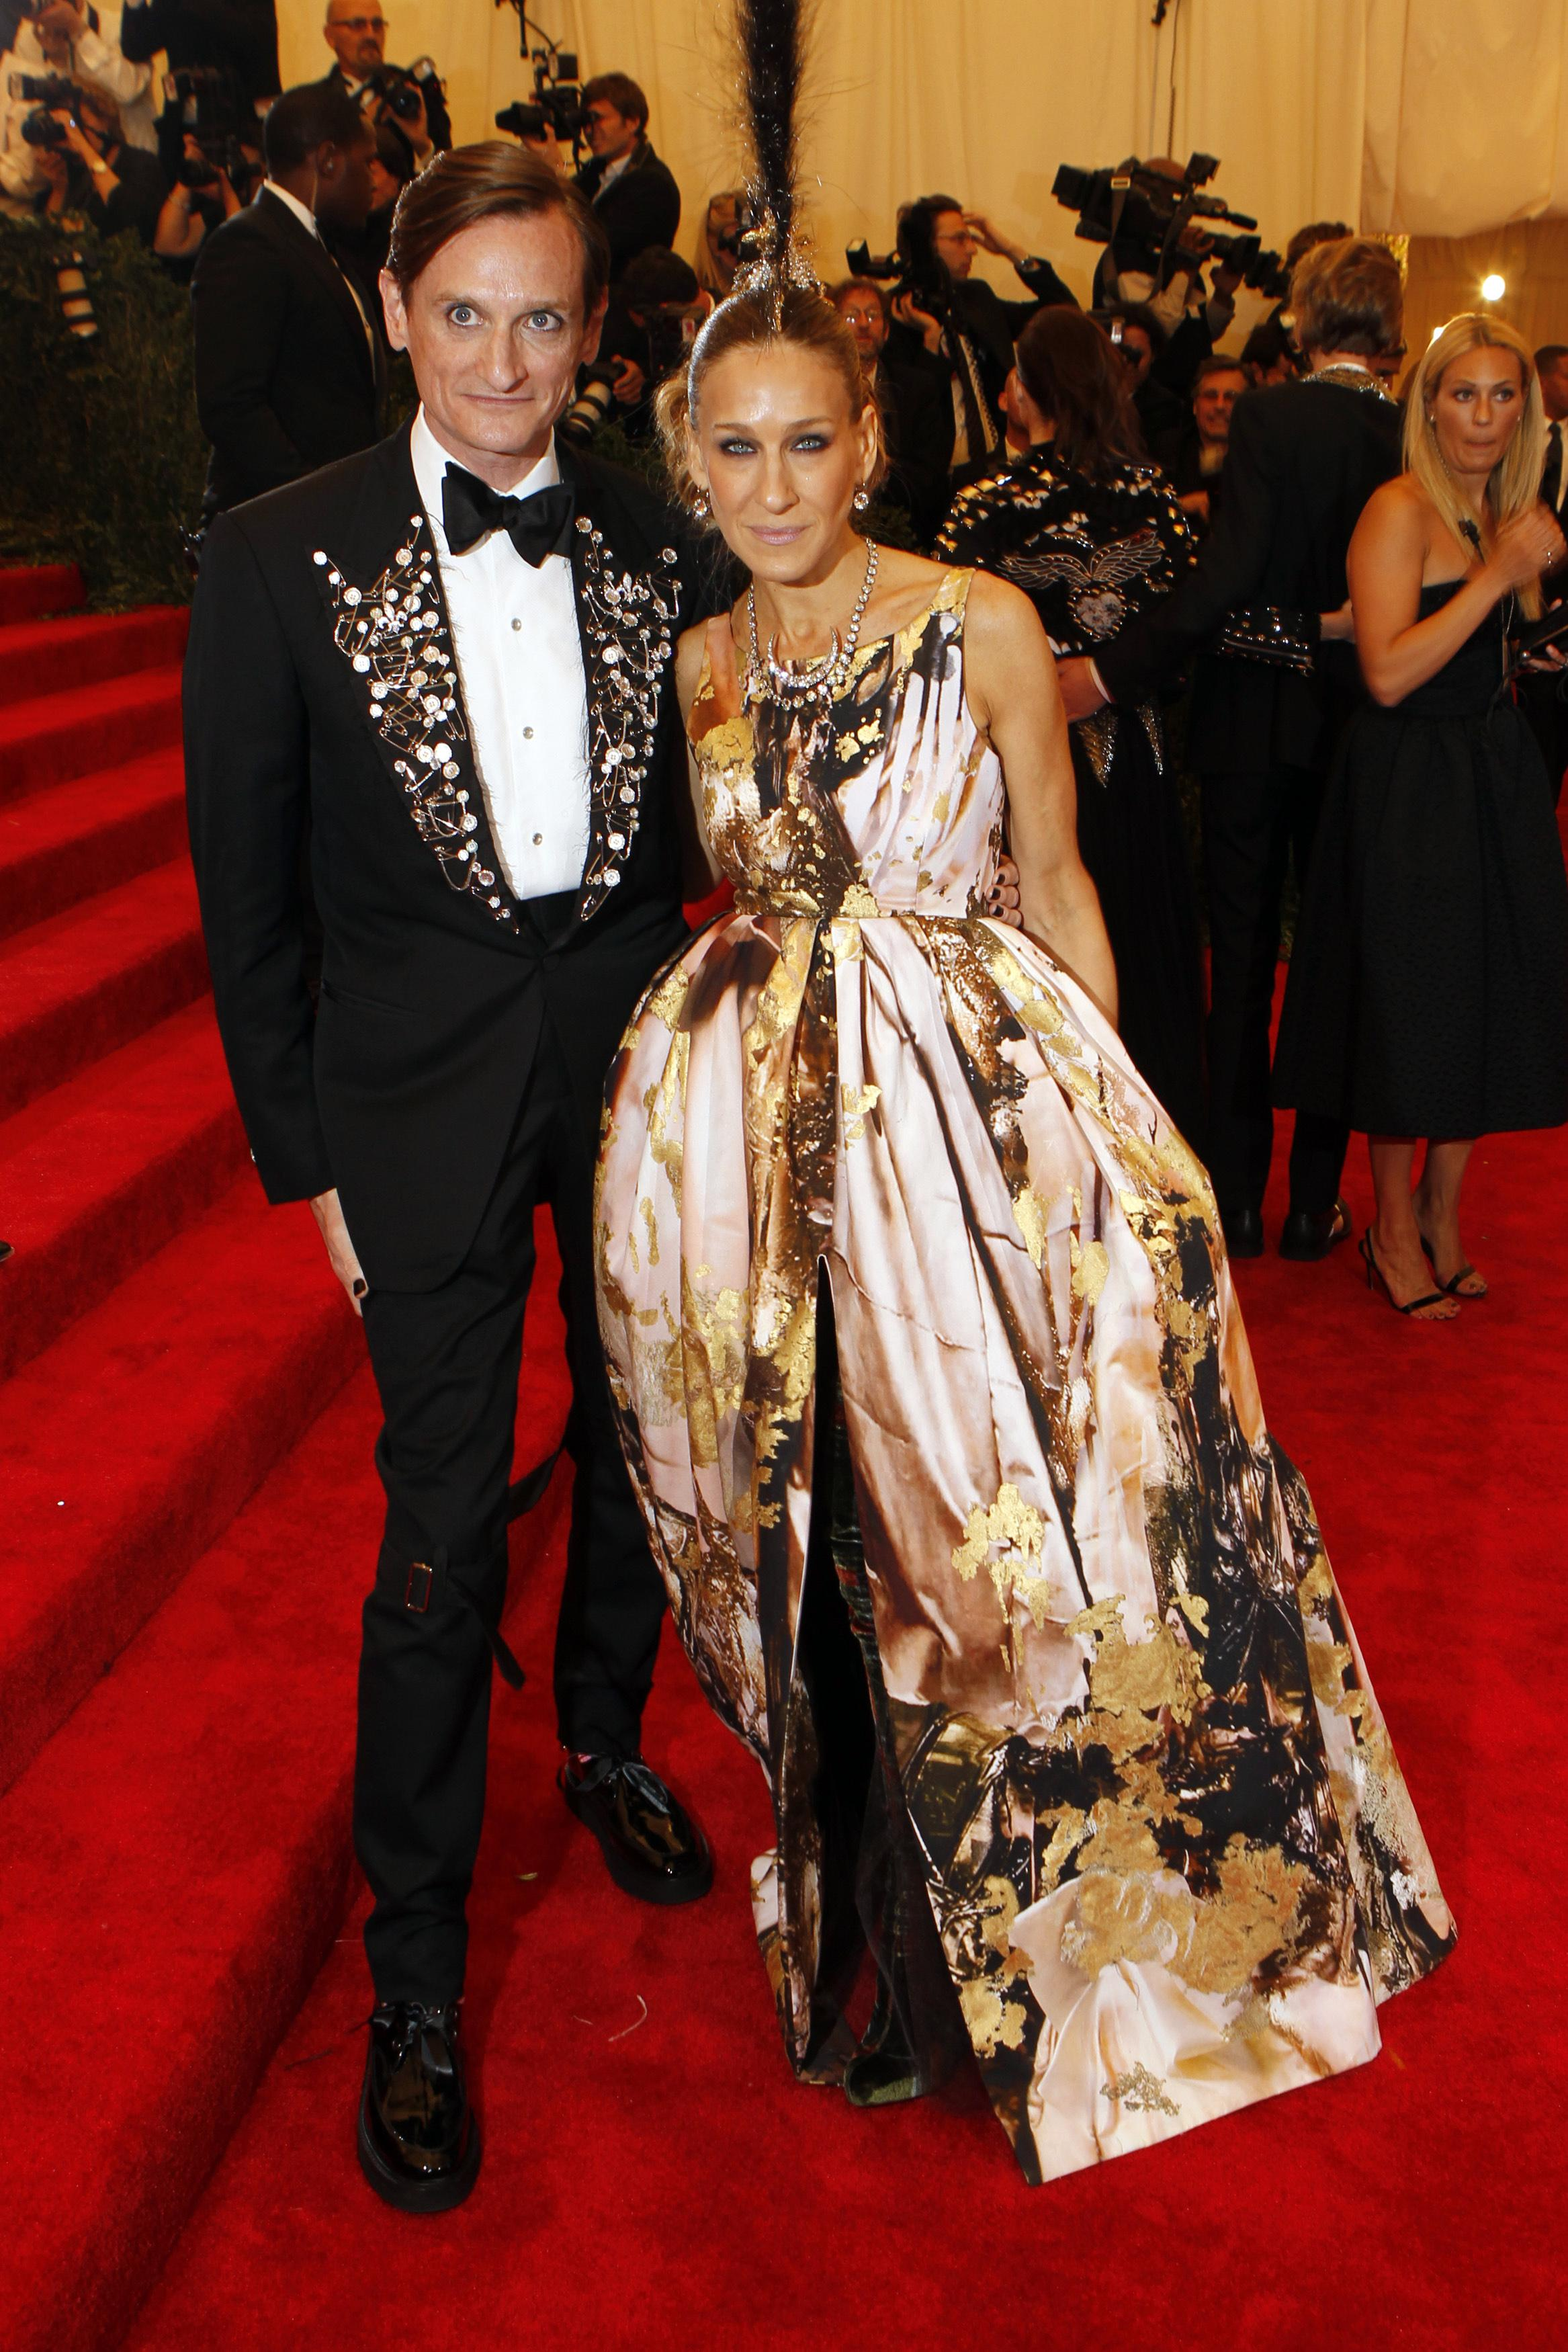 Sarah Jessica Parker and Hamish Bowles at the 2013 Met Gala